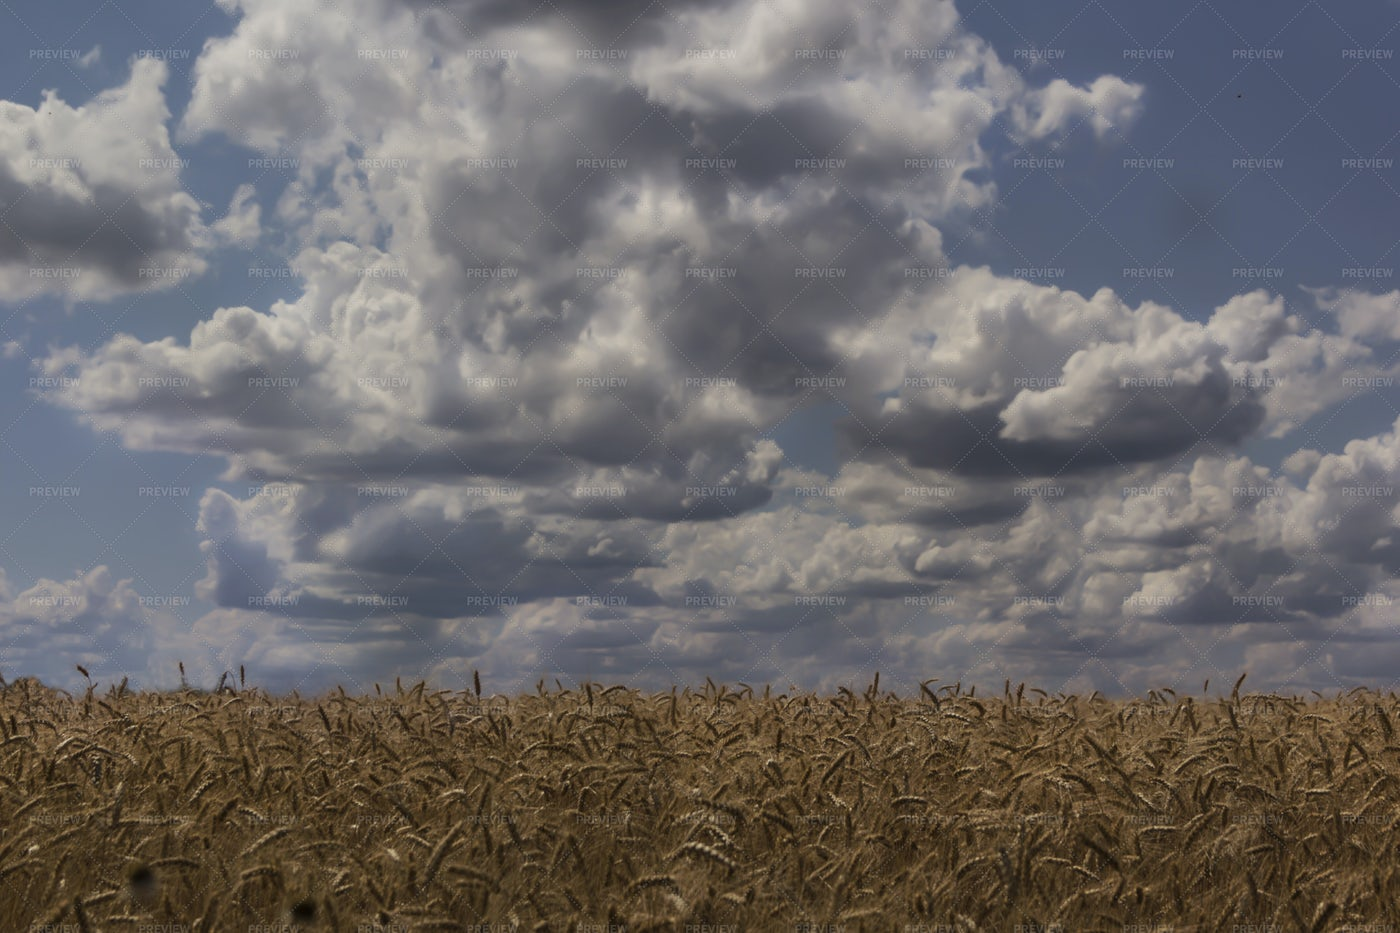 Wheat Field Under Clouds: Stock Photos